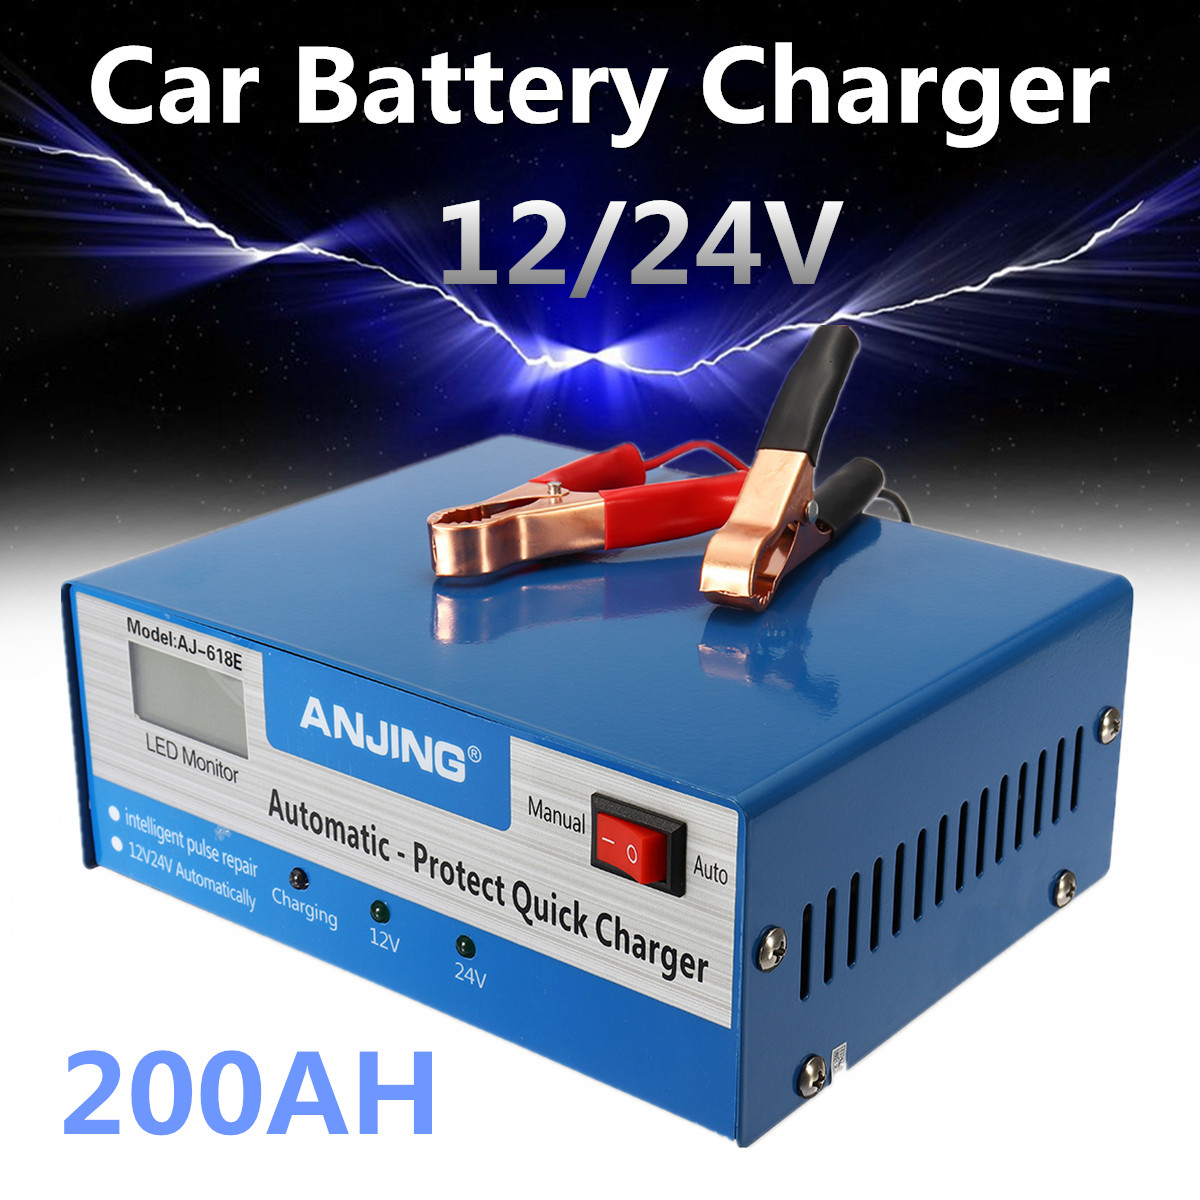 Car-Battery-Charger Adapter with 130V-250V 200AH Pulse-Repair Intelligent Full-Automatic-Protect title=